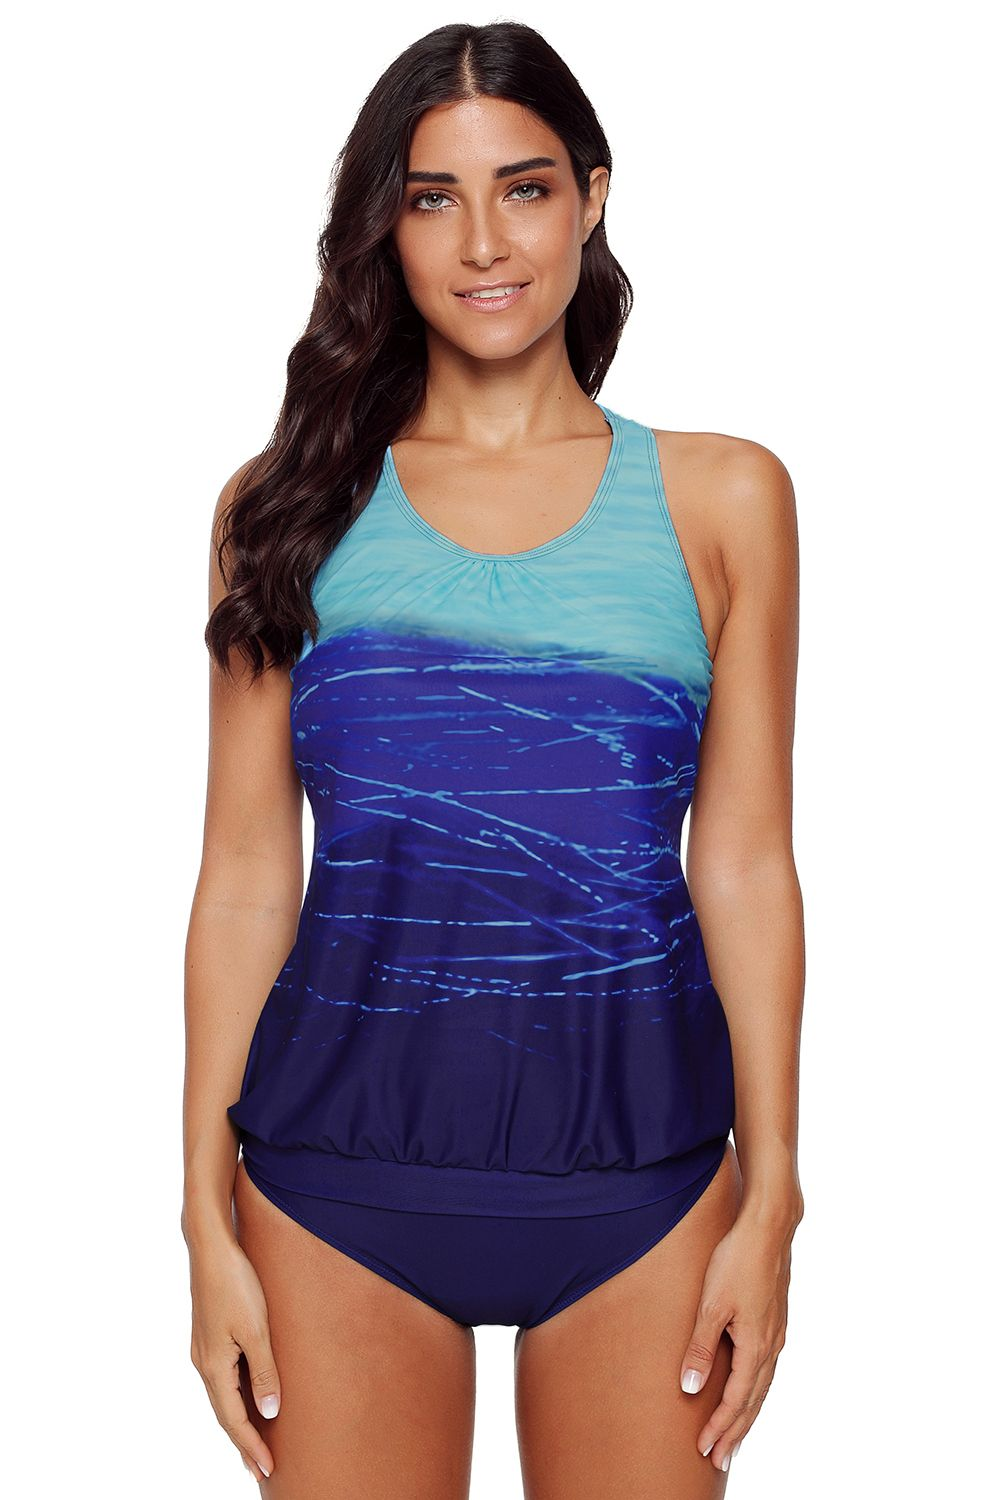 c623798d07 2pcs Tankini Swimsuit - Blue, (US 16-18)XL in 2019   Products ...